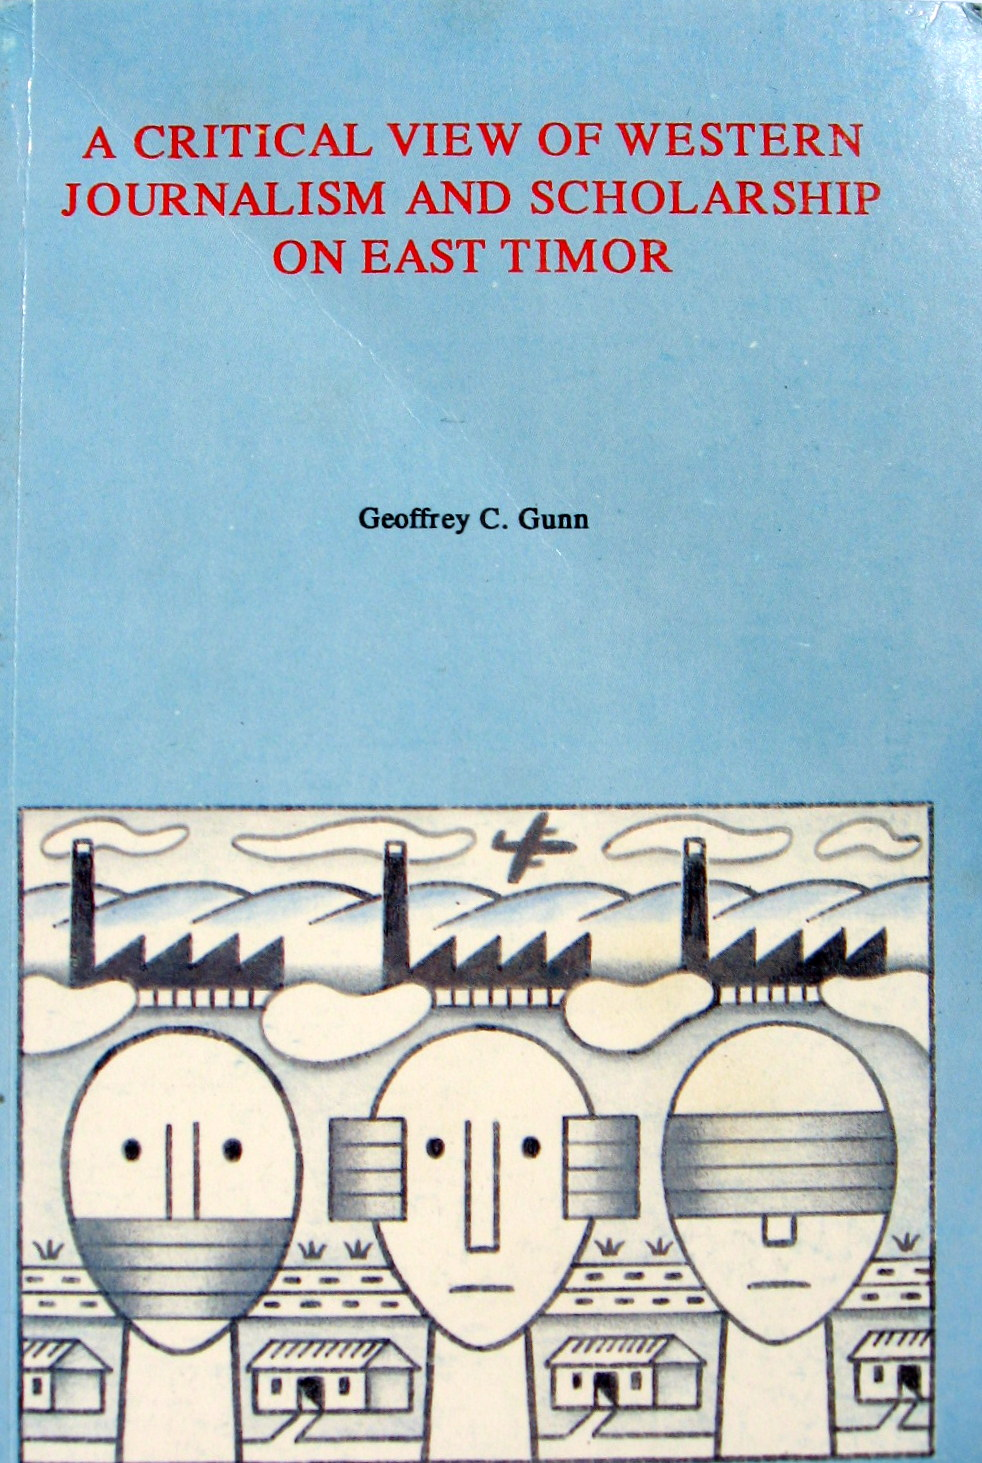 A Critical View of Western Journalism and Scholarship on East Timor